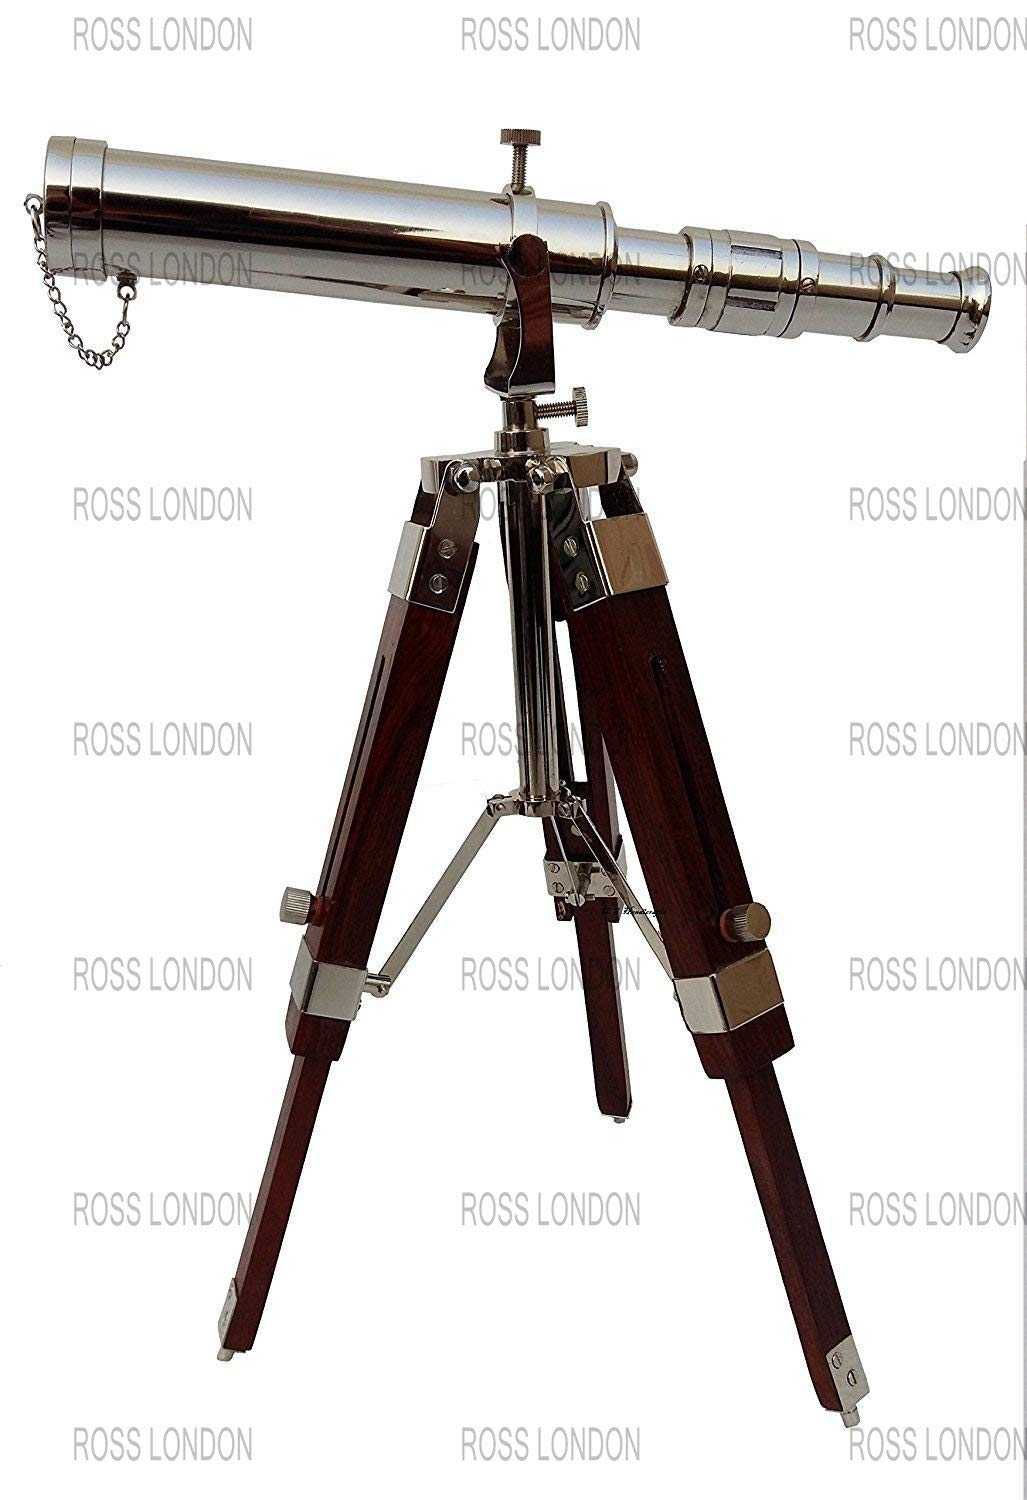 ROSS LONDON Spyglass Brass Nautical Nickel Finish Telescope with Wooden Tripod Collectible